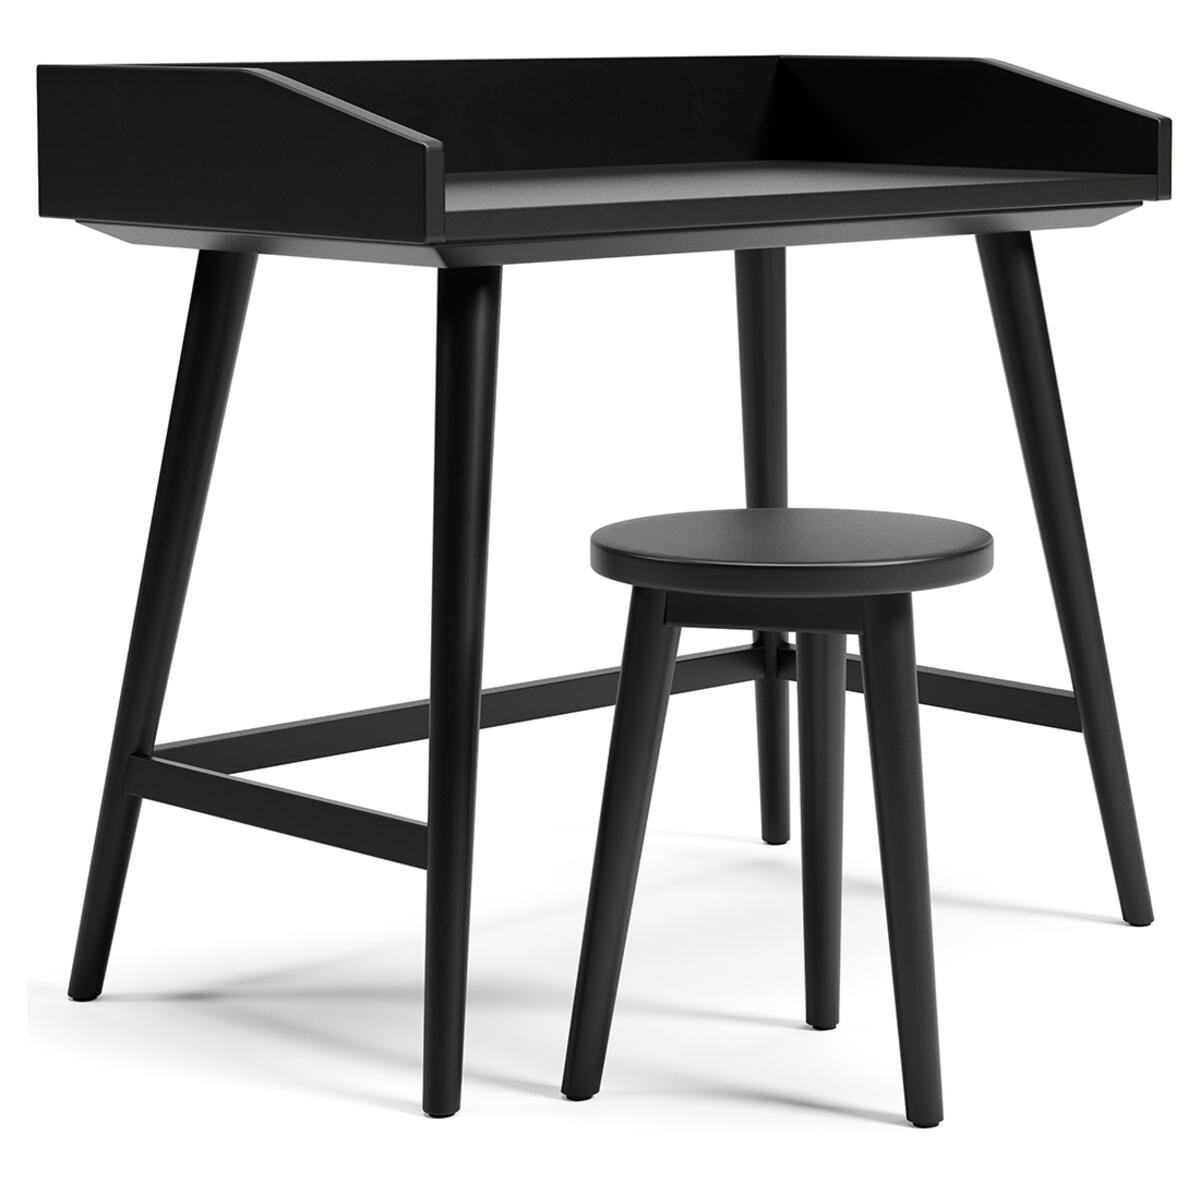 Blariden Desk With Stool